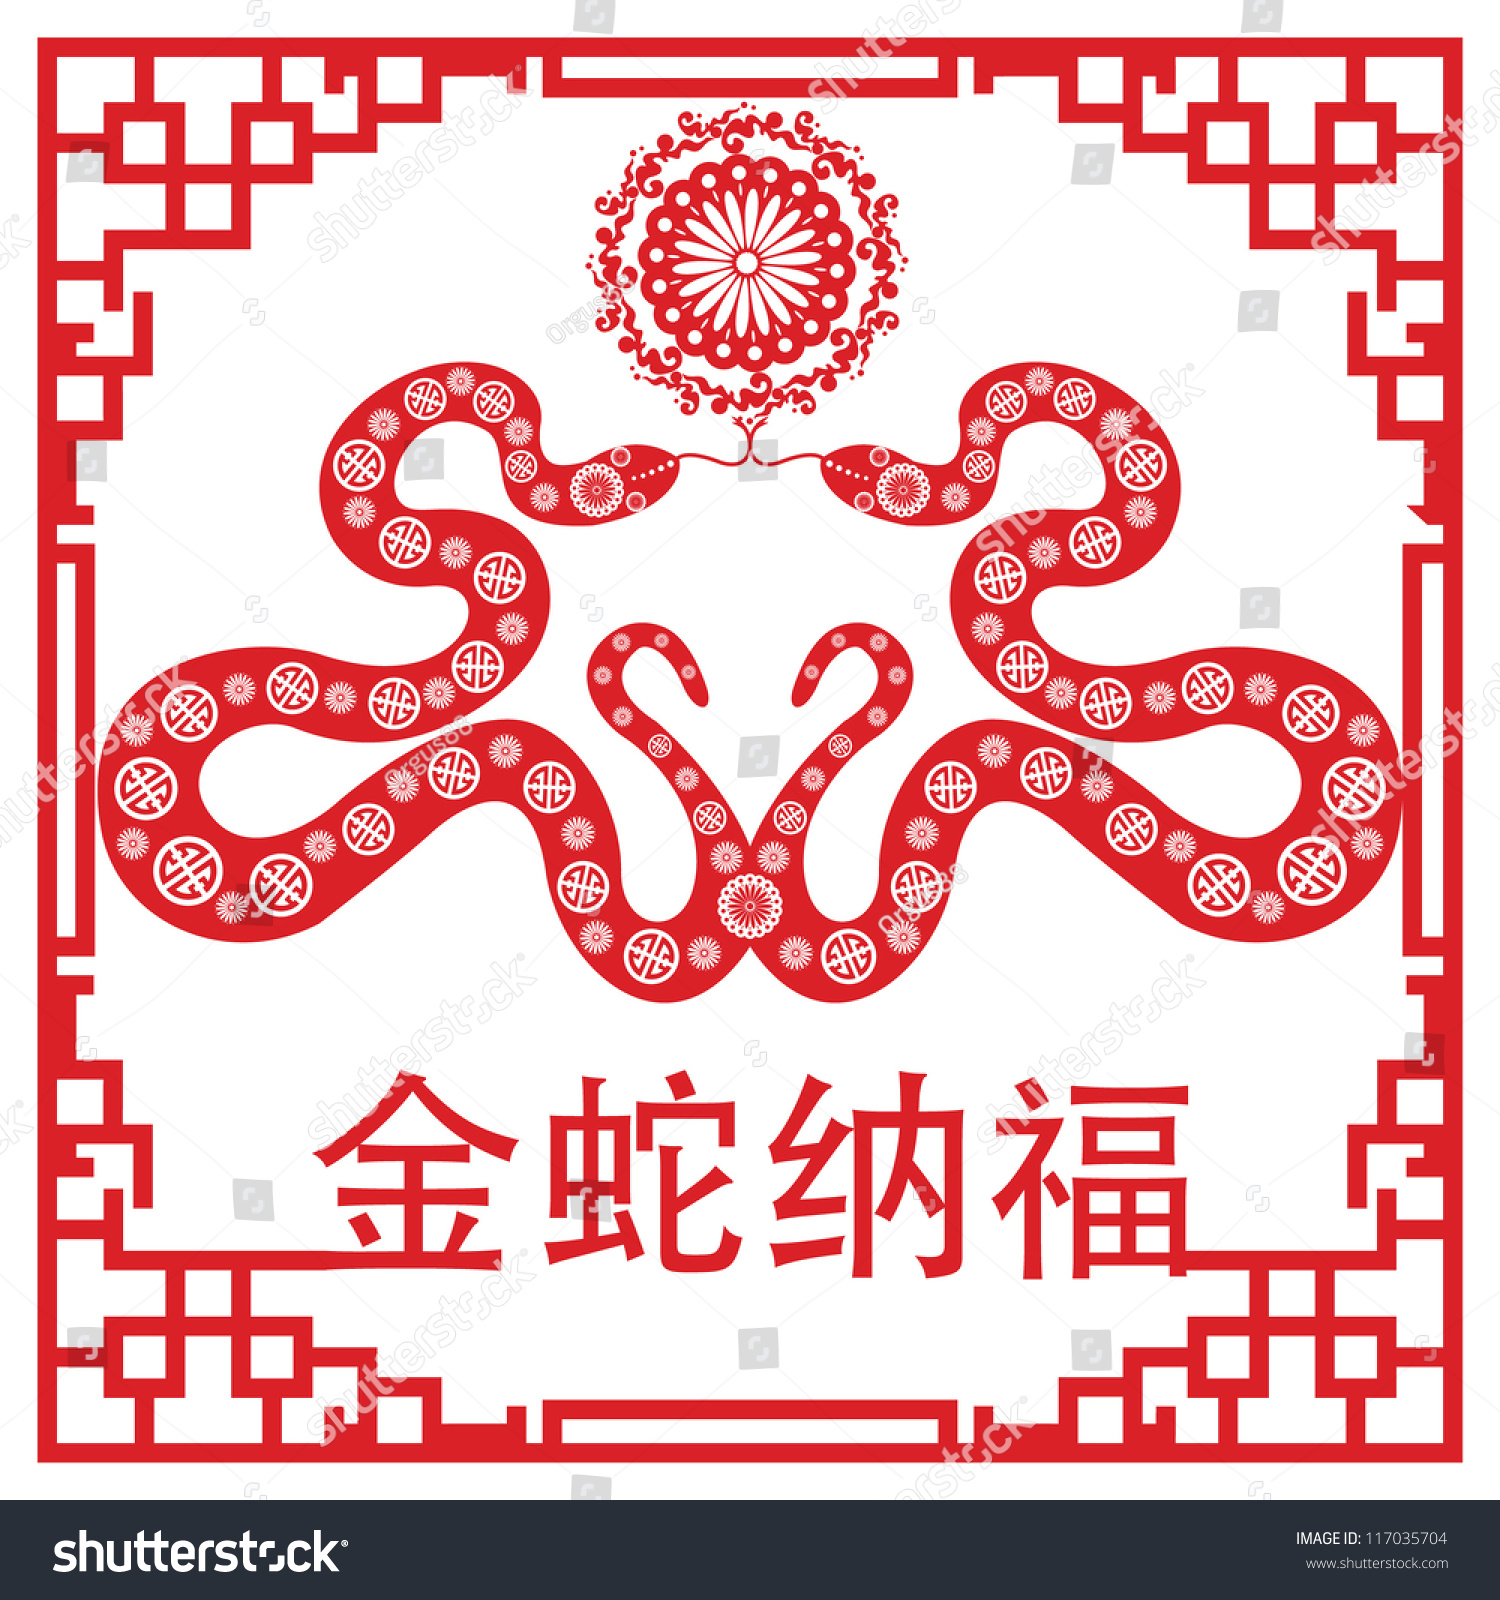 Chinese Paper Cut Out Snake Symbol Stock Vector Royalty Free